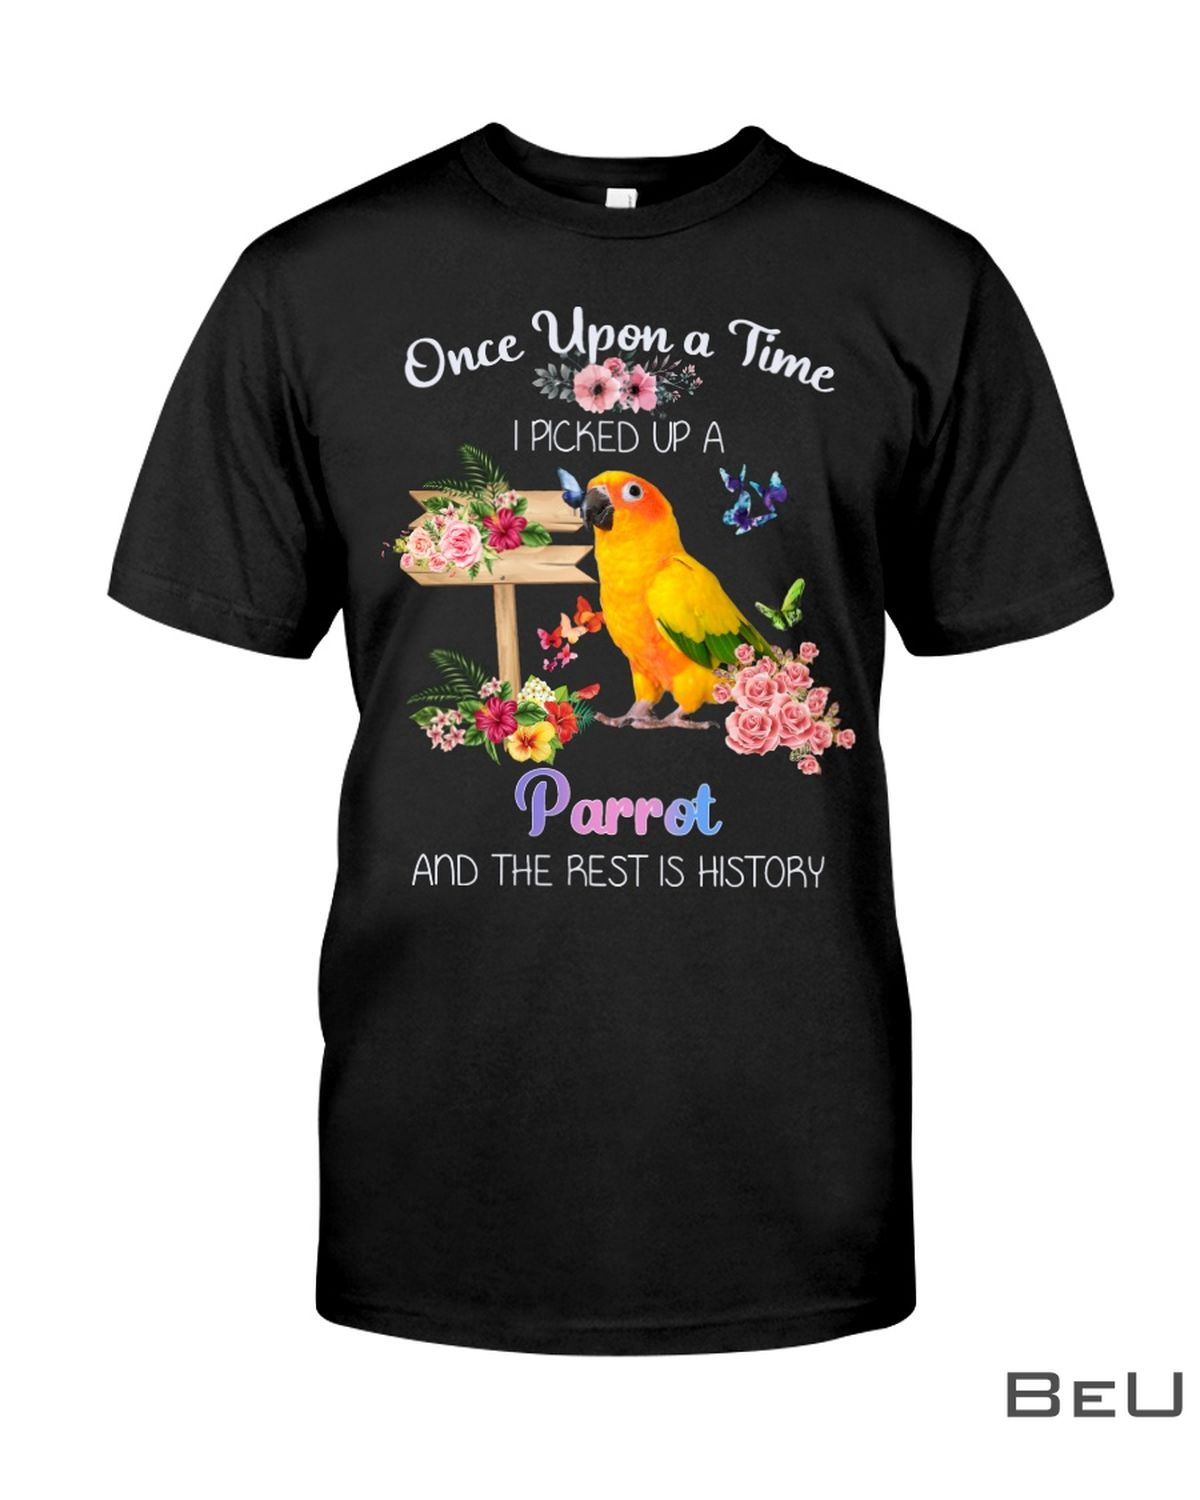 Once Upon A Time I Picked Up A Parrot And The Rest Is History Shirt, hoodie, tank top